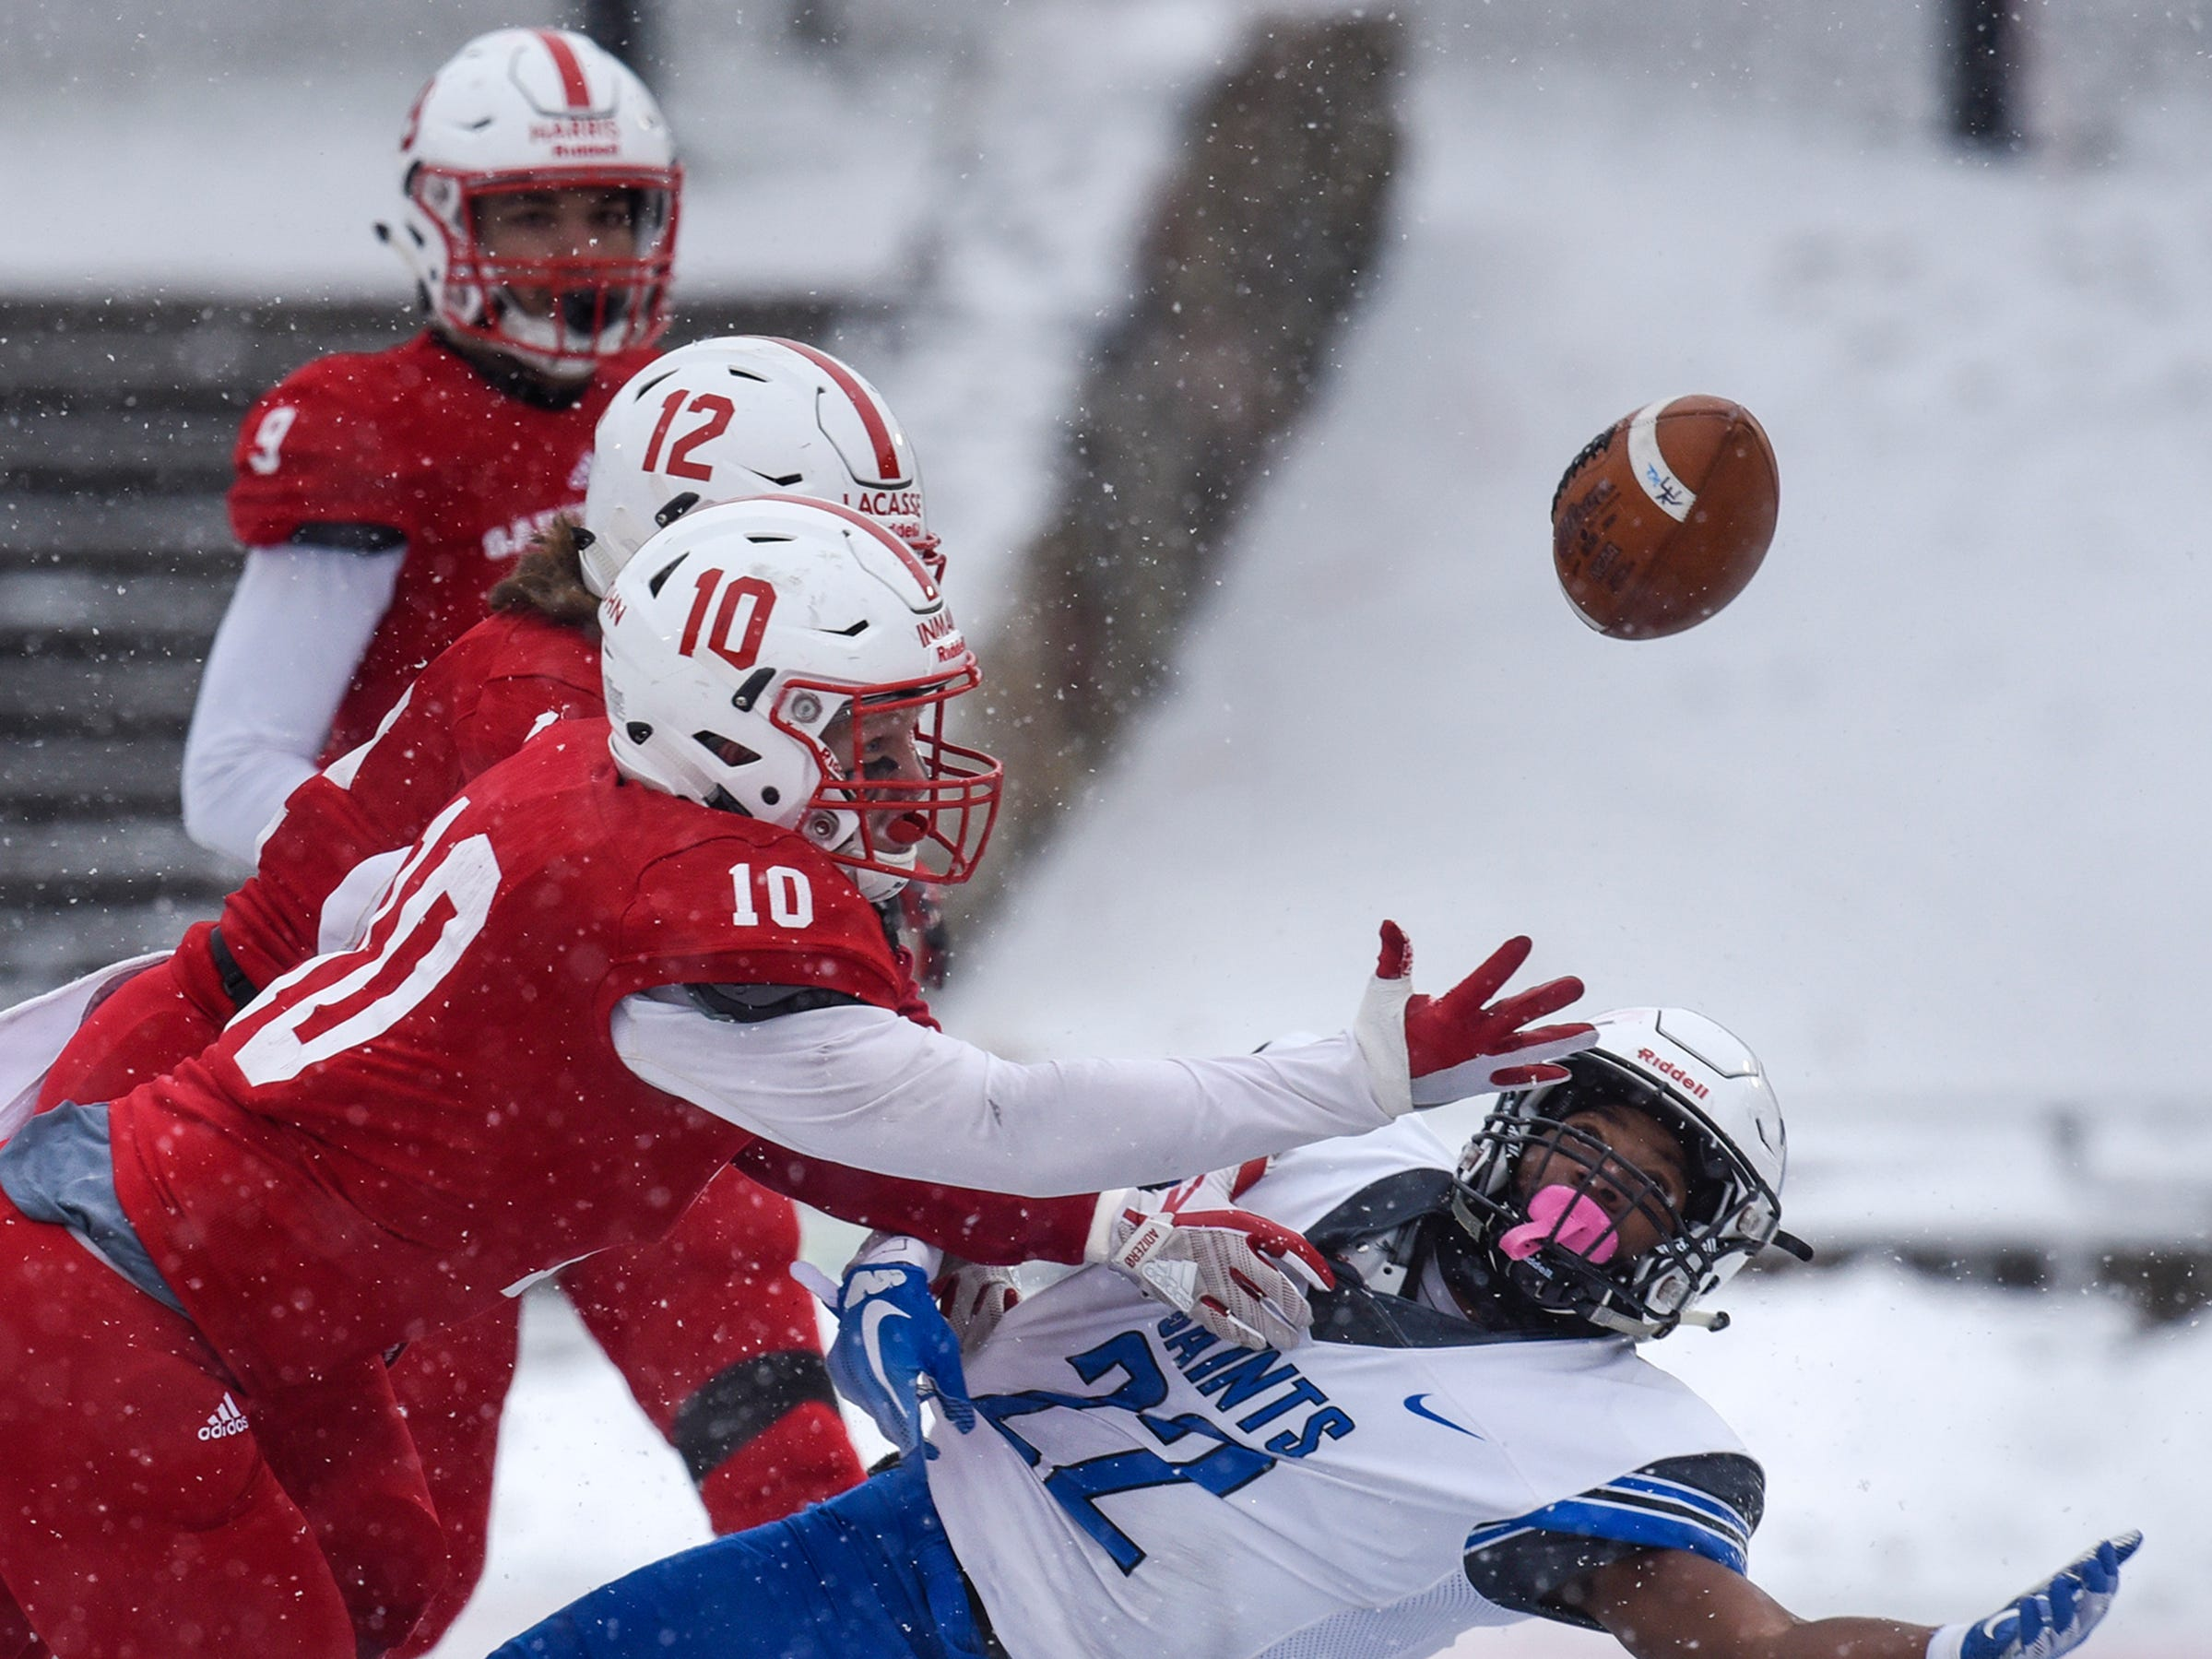 James Inman and Ryan LaCasse of St. John's try to break up a pass to Darrell Crenshaw during the first half of the Saturday, Nov. 10, game against Thomas More University at Clemens Stadium in Collegeville.